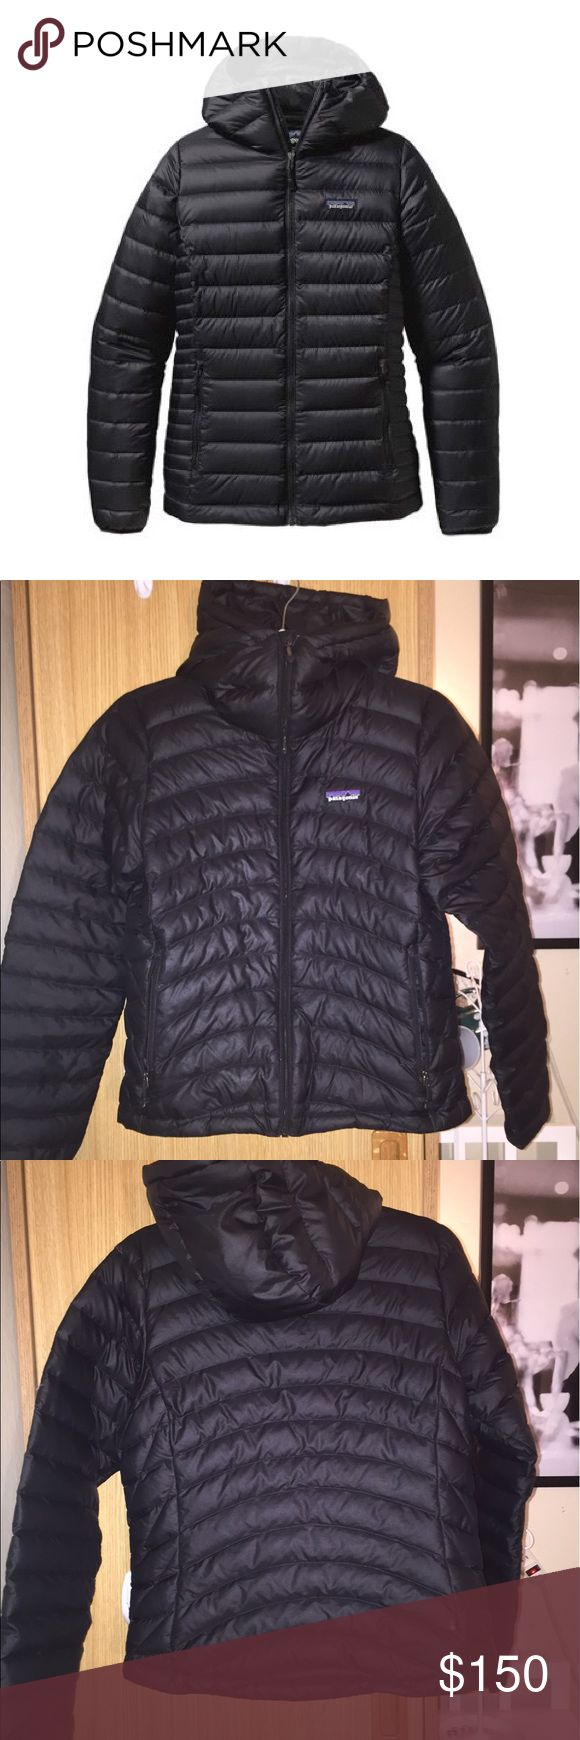 Women's Patagonia Down Sweater Jacket Black down Patagonia jacket, small size, good condition, a couple small stains on the front (pictured) Patagonia Jackets & Coats Puffers